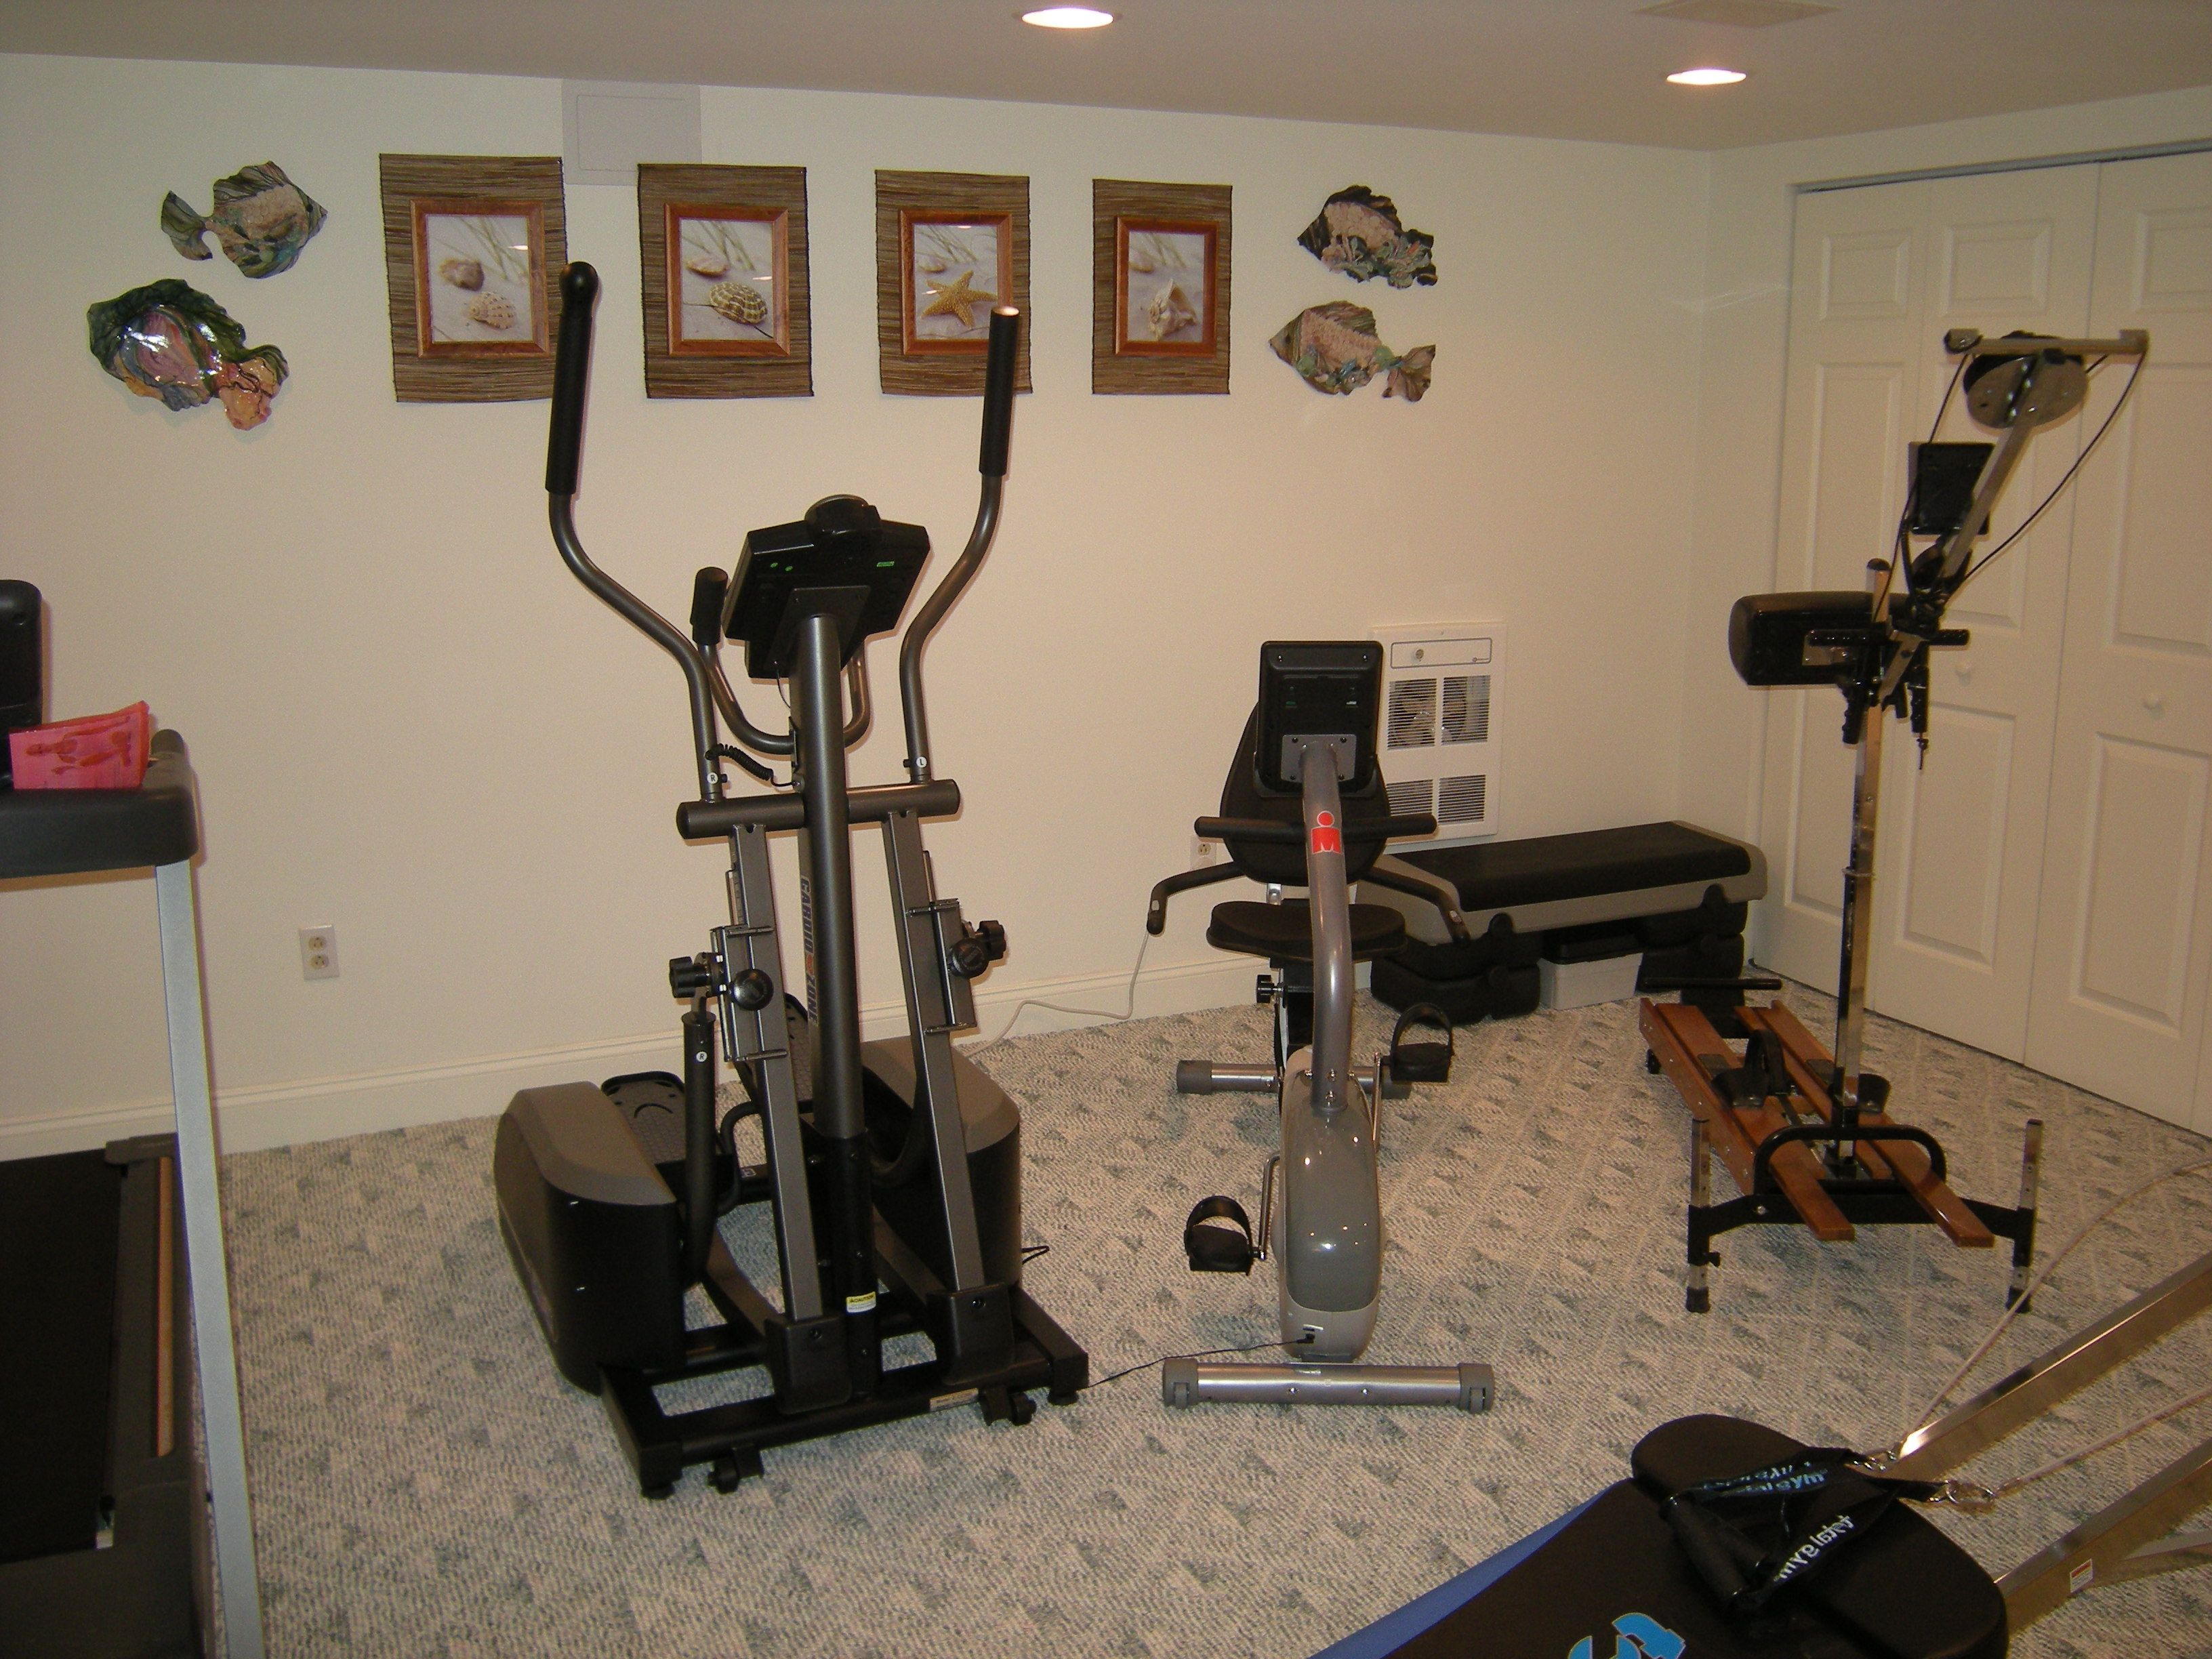 Home Gym Ideas Small Space Part - 49: Home Exercise Room Ideas Small Spaces Gym Design - Coolest Home Exercise  Room Ideas Small Spaces Gym Design, Interior Designs Alluring Home Workout  Room ...